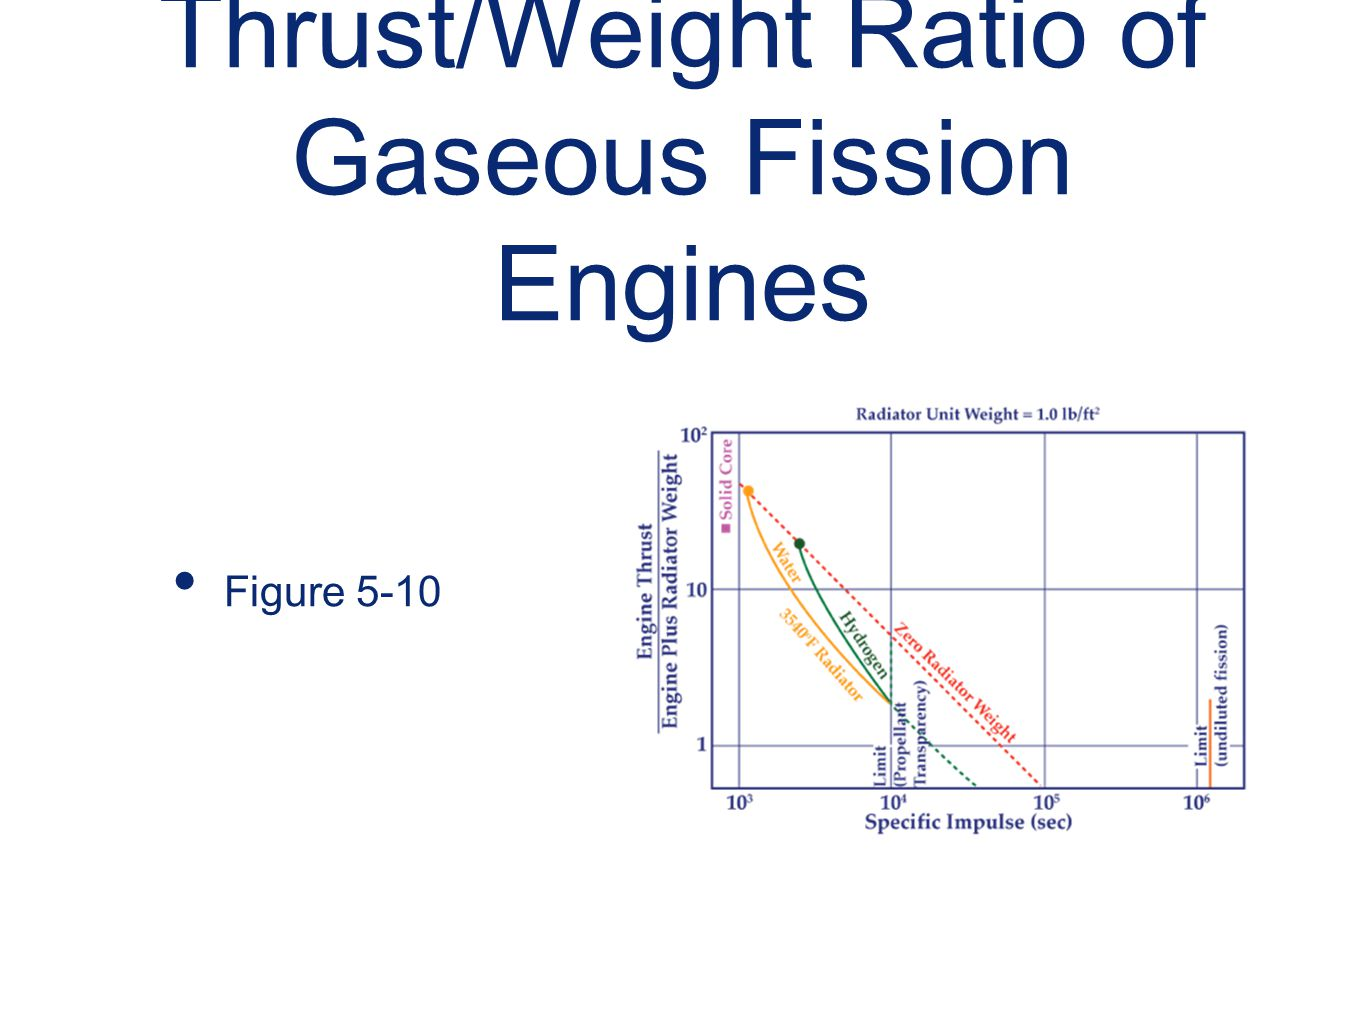 Thrust/Weight Ratio of Gaseous Fission Engines Figure 5-10